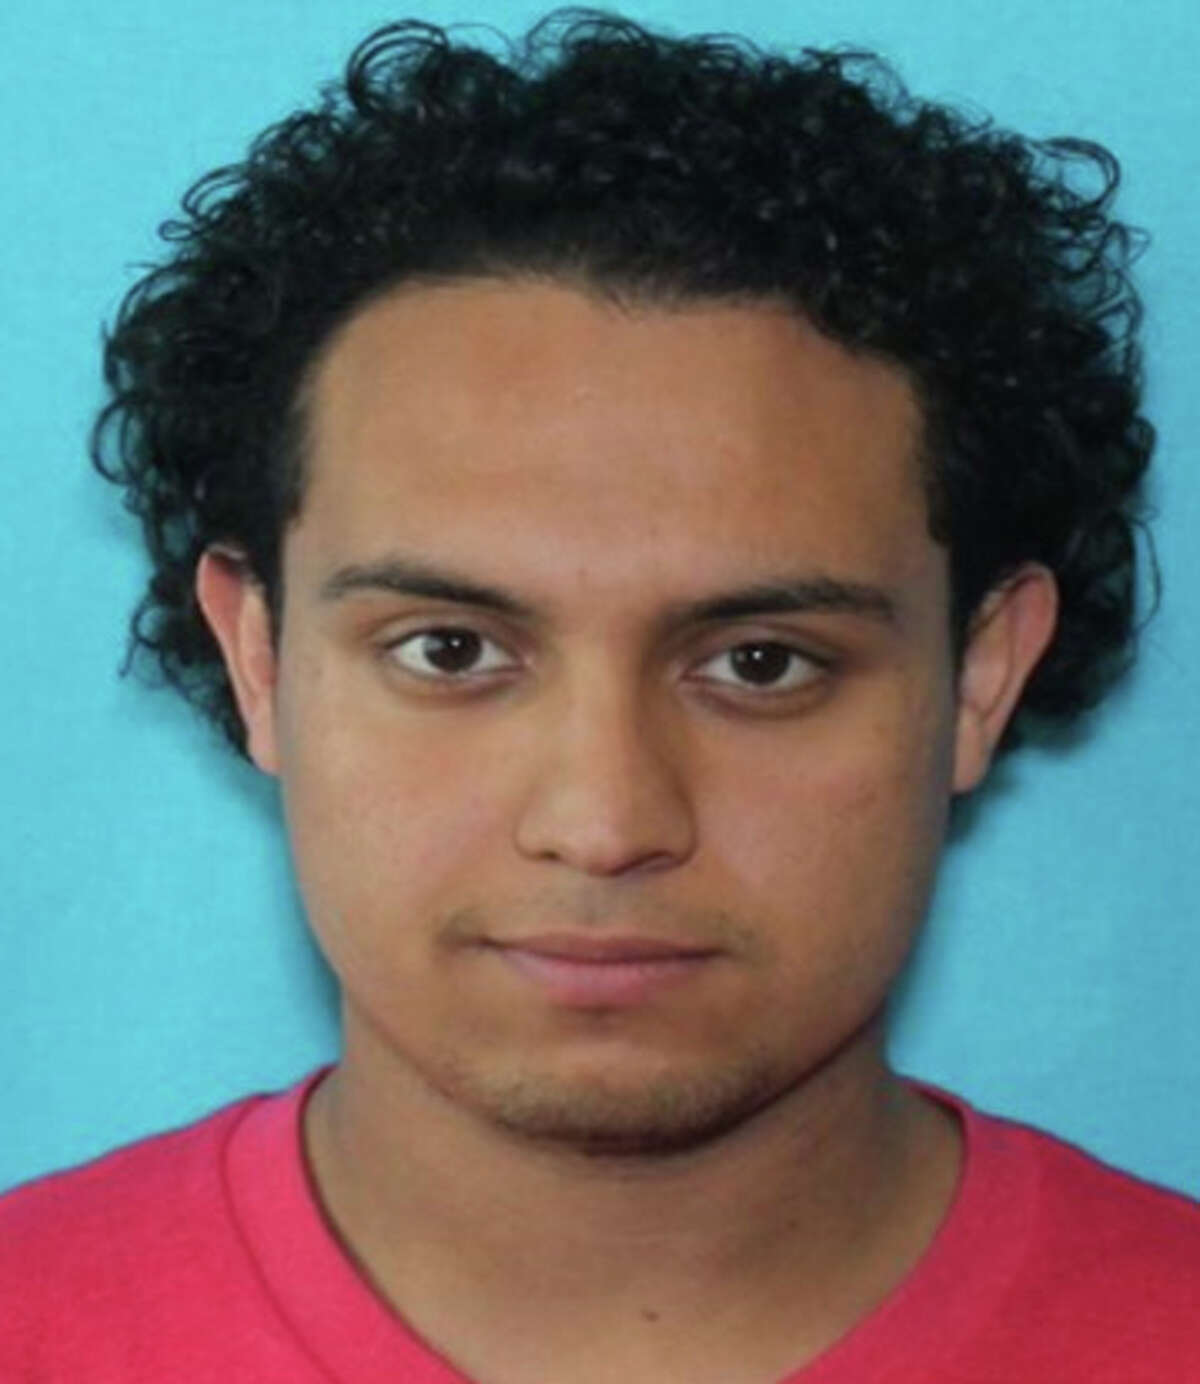 Christian Perez Alonzo was last seen at about 7 p.m. on Christmas Eve.